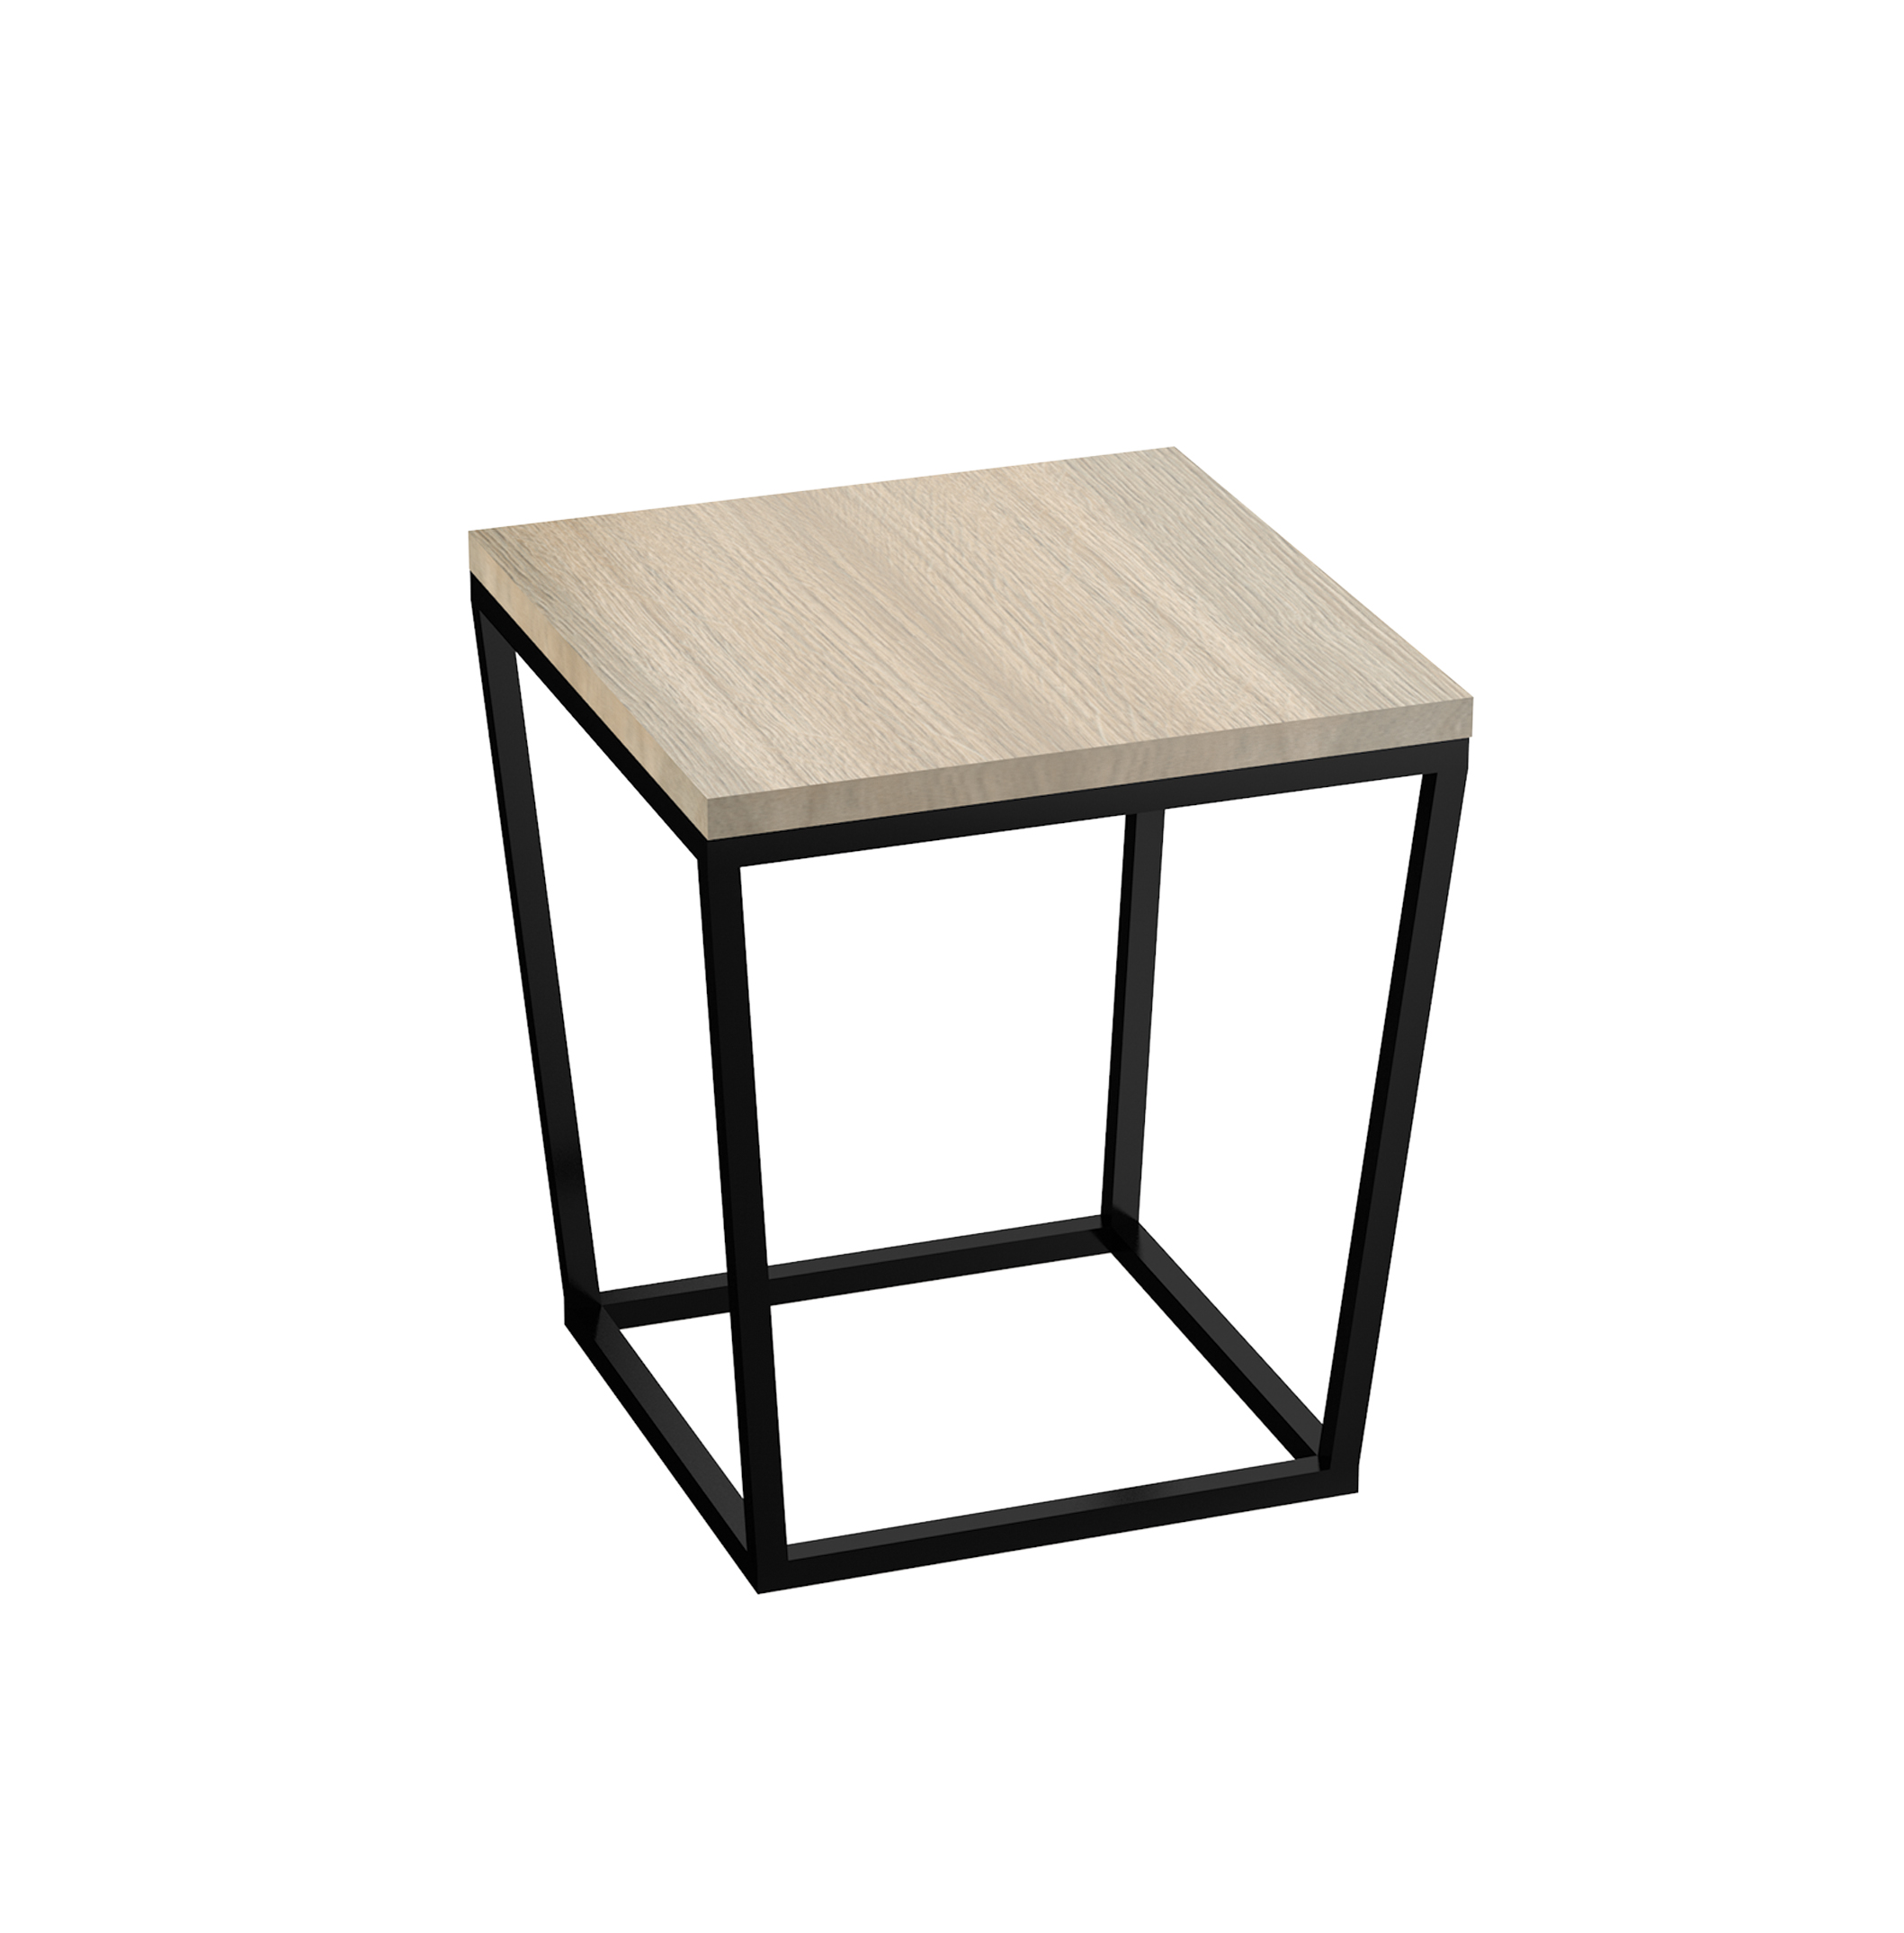 Montana Images 2019 CD030 Side TablesSide Table CTB008